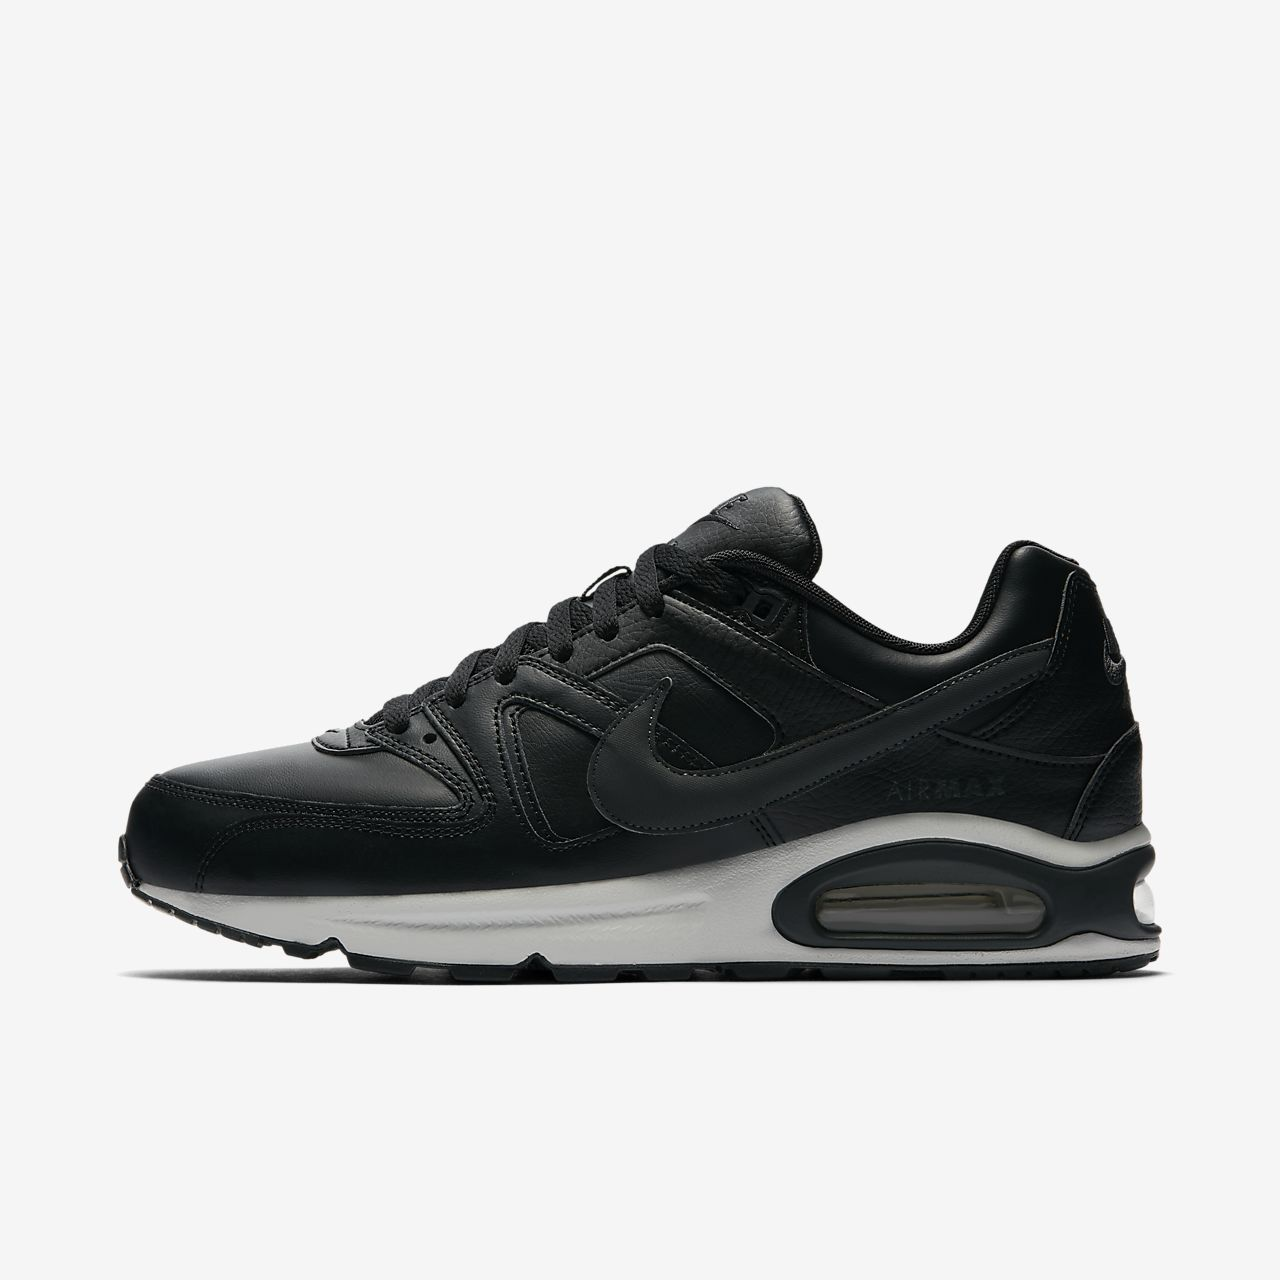 sneakers for cheap 616cb 938c4 ... Chaussure Nike Air Max Command pour Homme